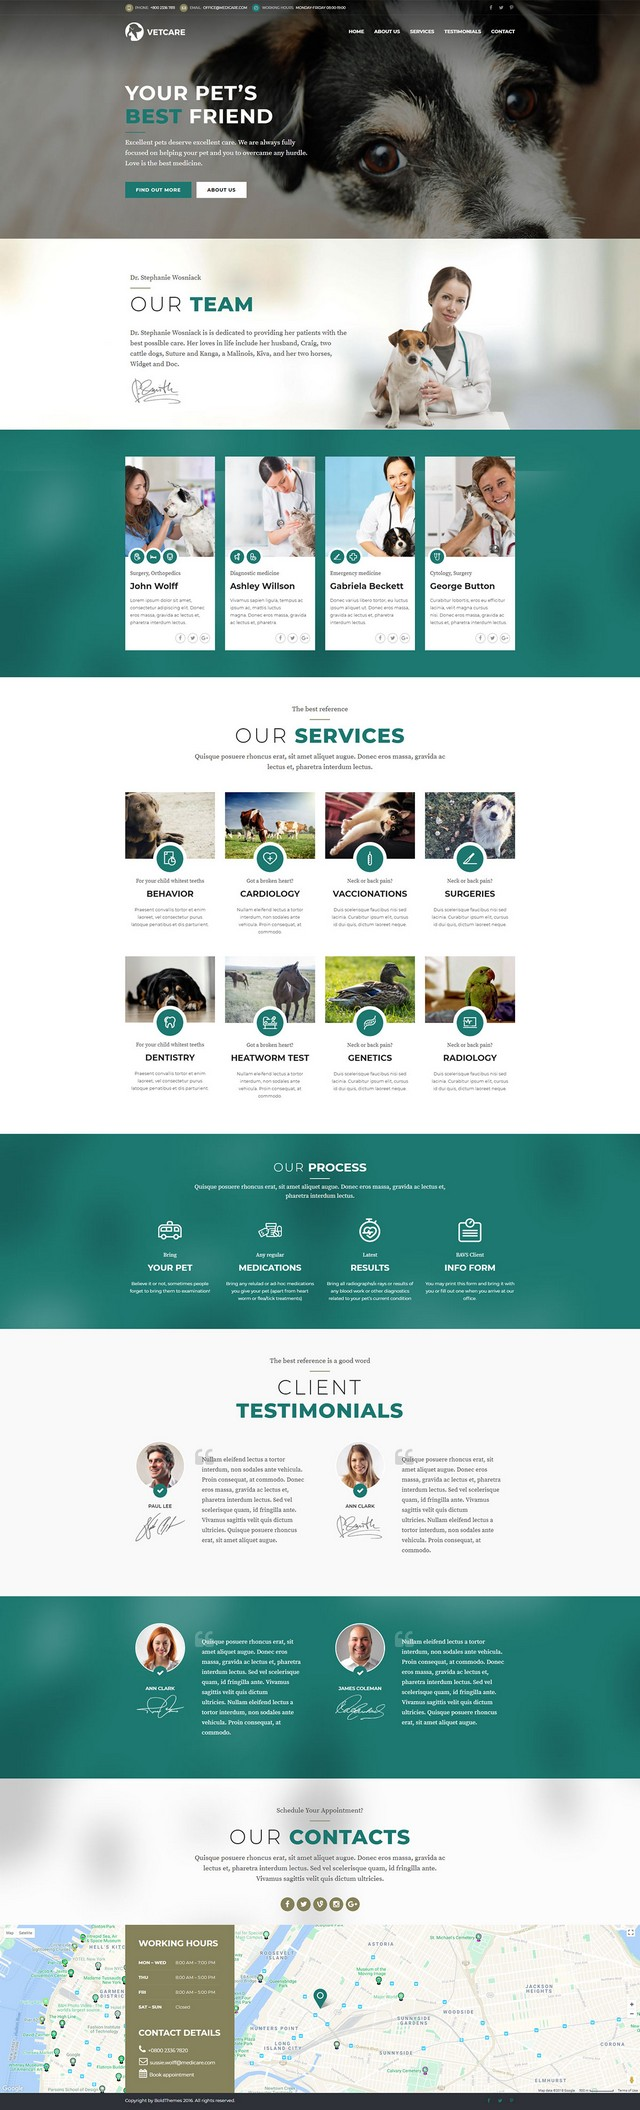 health and medical wordpress theme Medicare homepage layout for vet